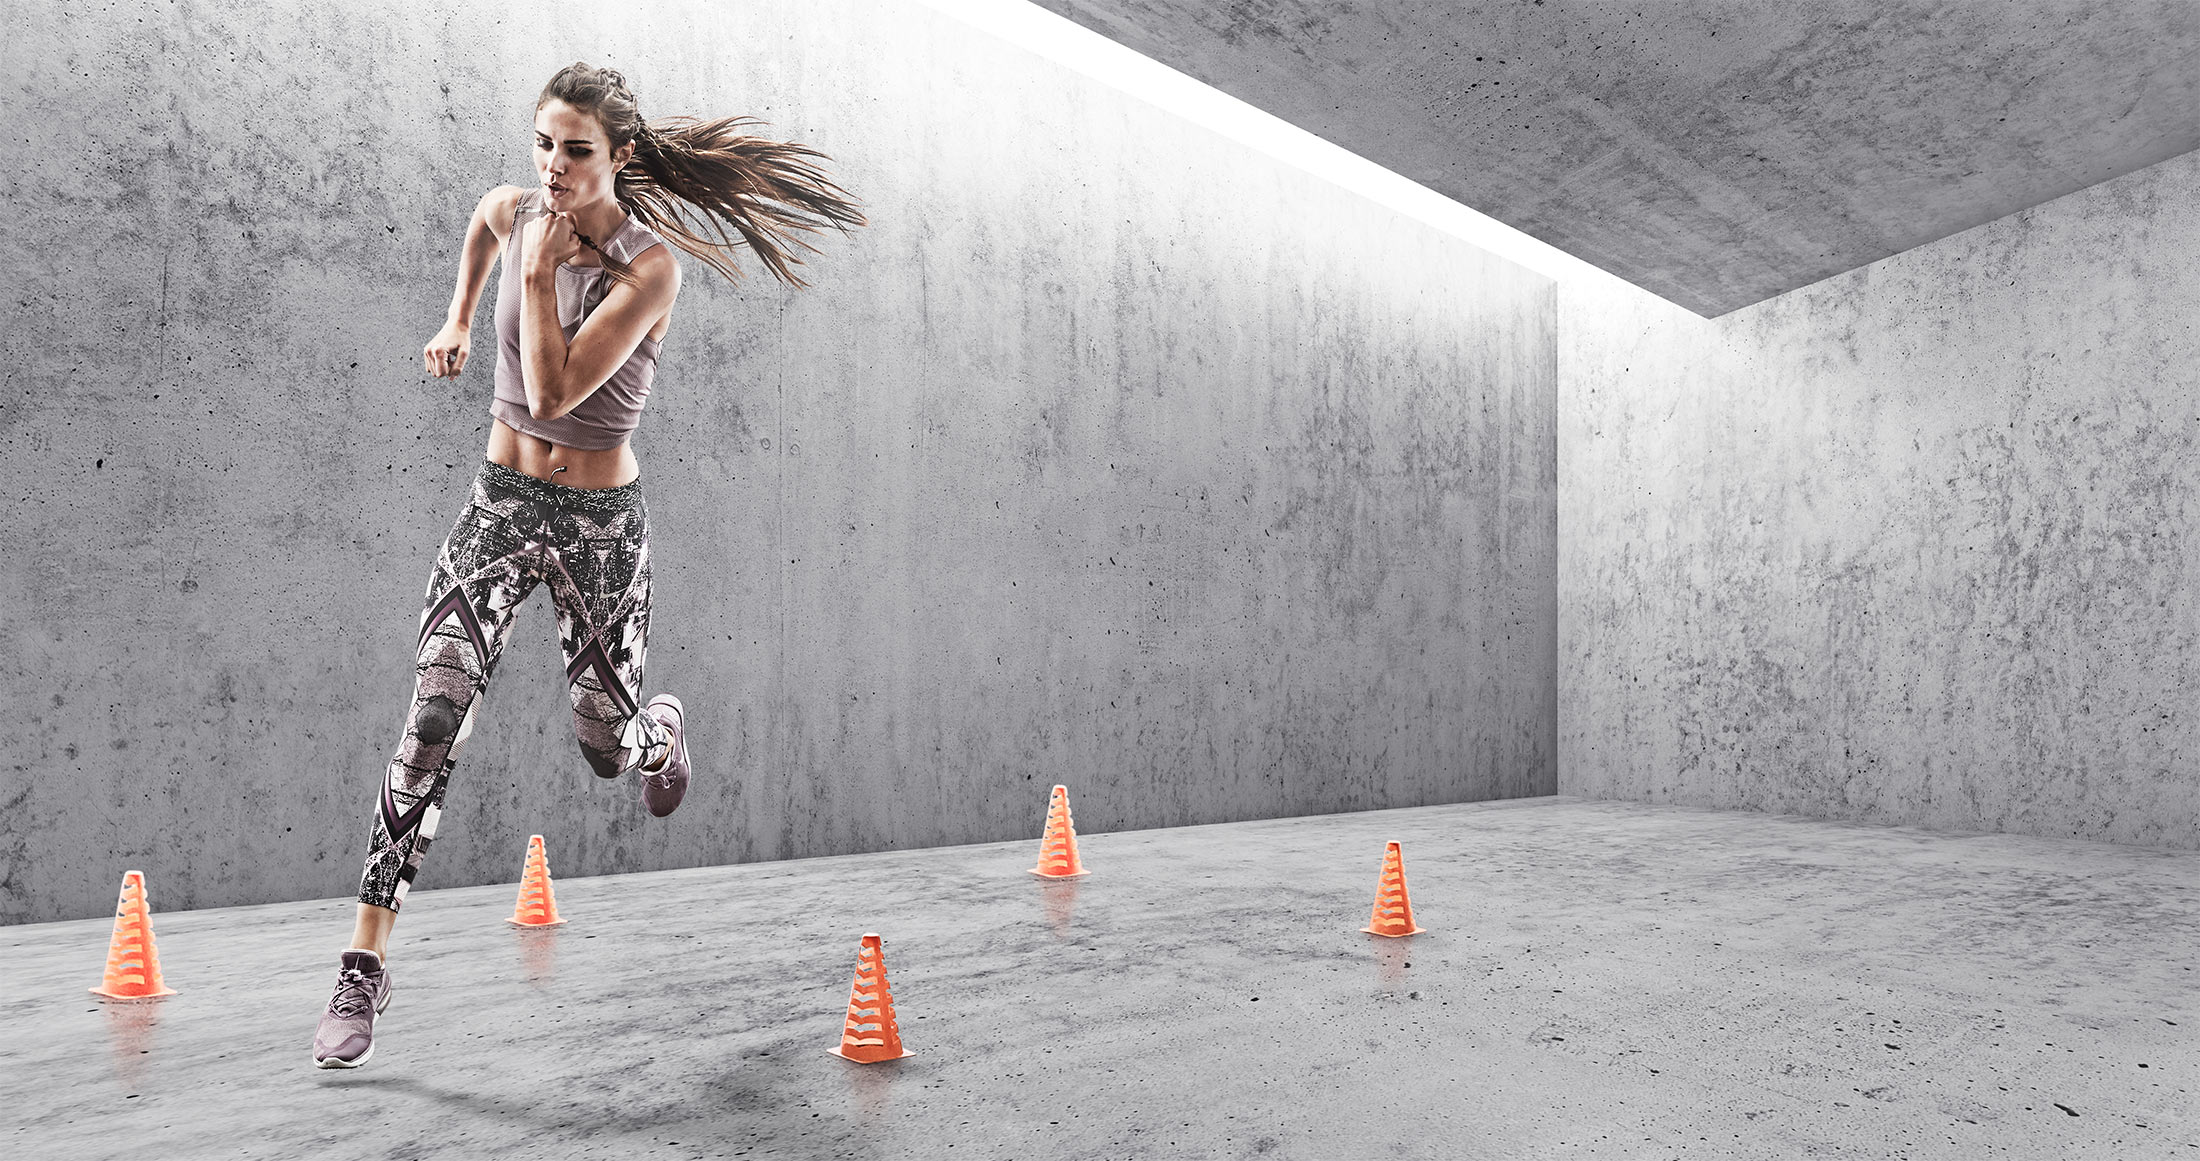 Concrete-CGI---5705_06_Cone_Runner_Female_V2_Layers-crop